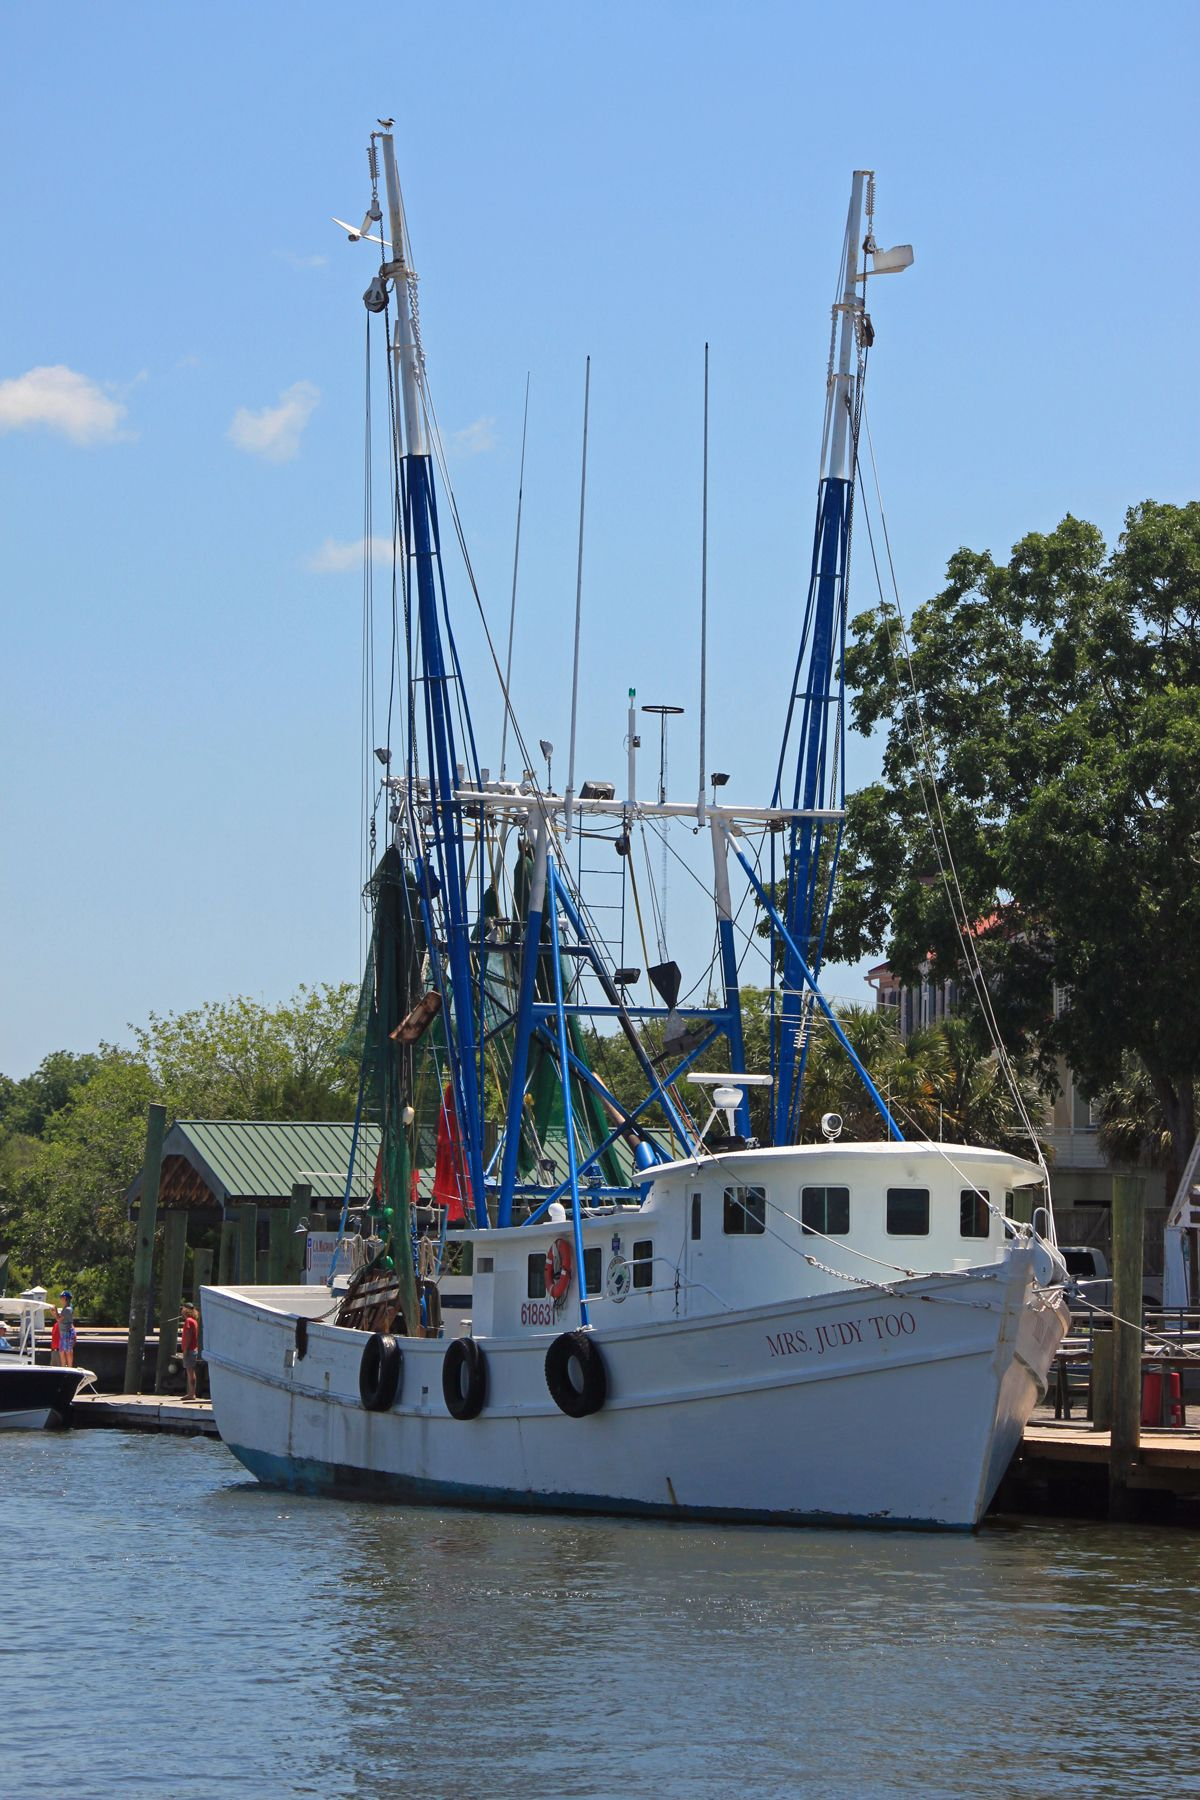 Miss judy too is a photo of a shrimper i found on shem for Ocean fishing oregon